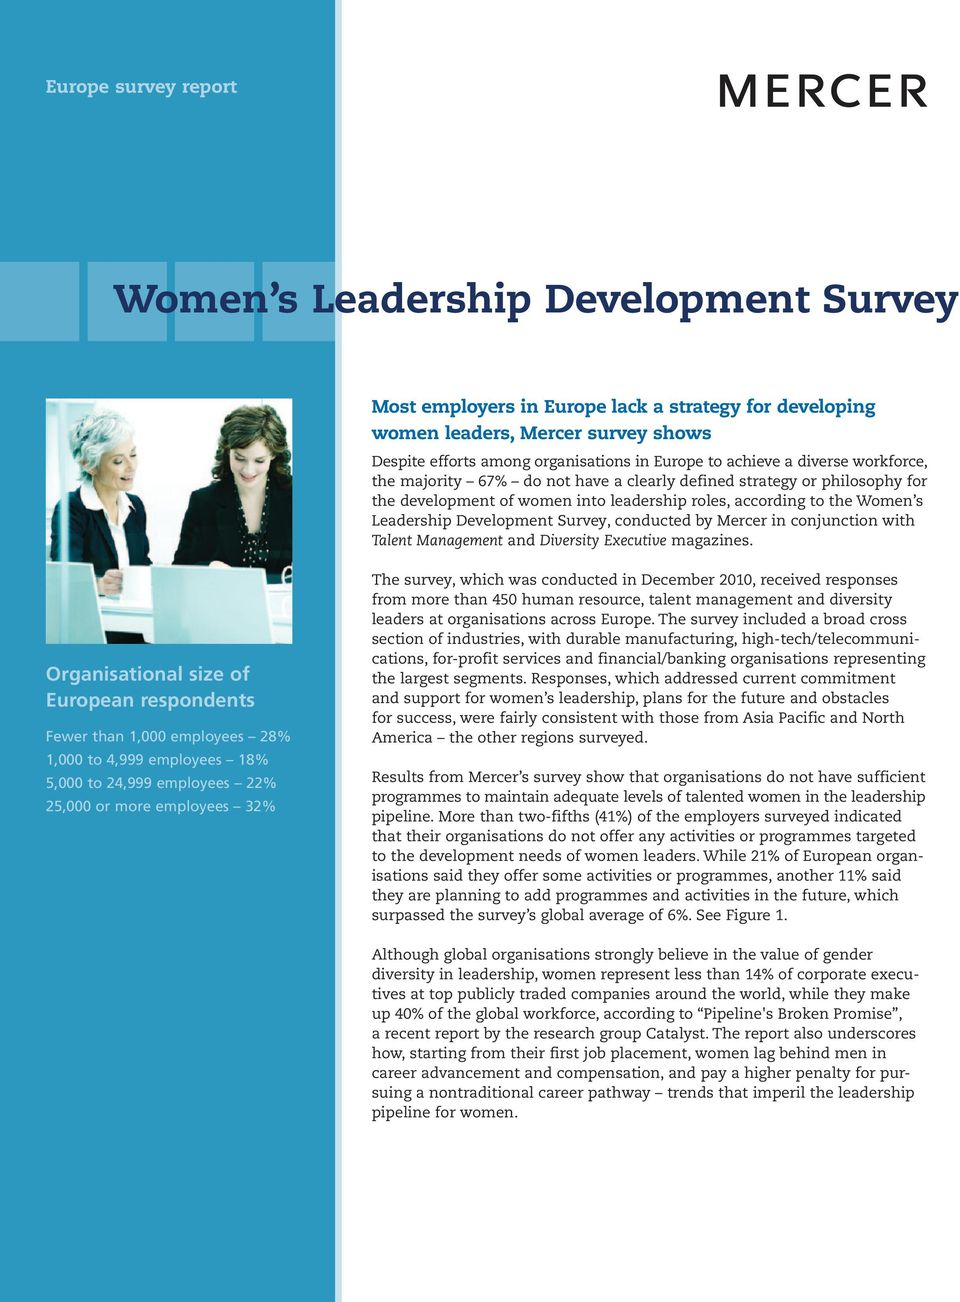 Survey, conducted by Mercer in conjunction with Talent Management and Diversity Executive magazines.